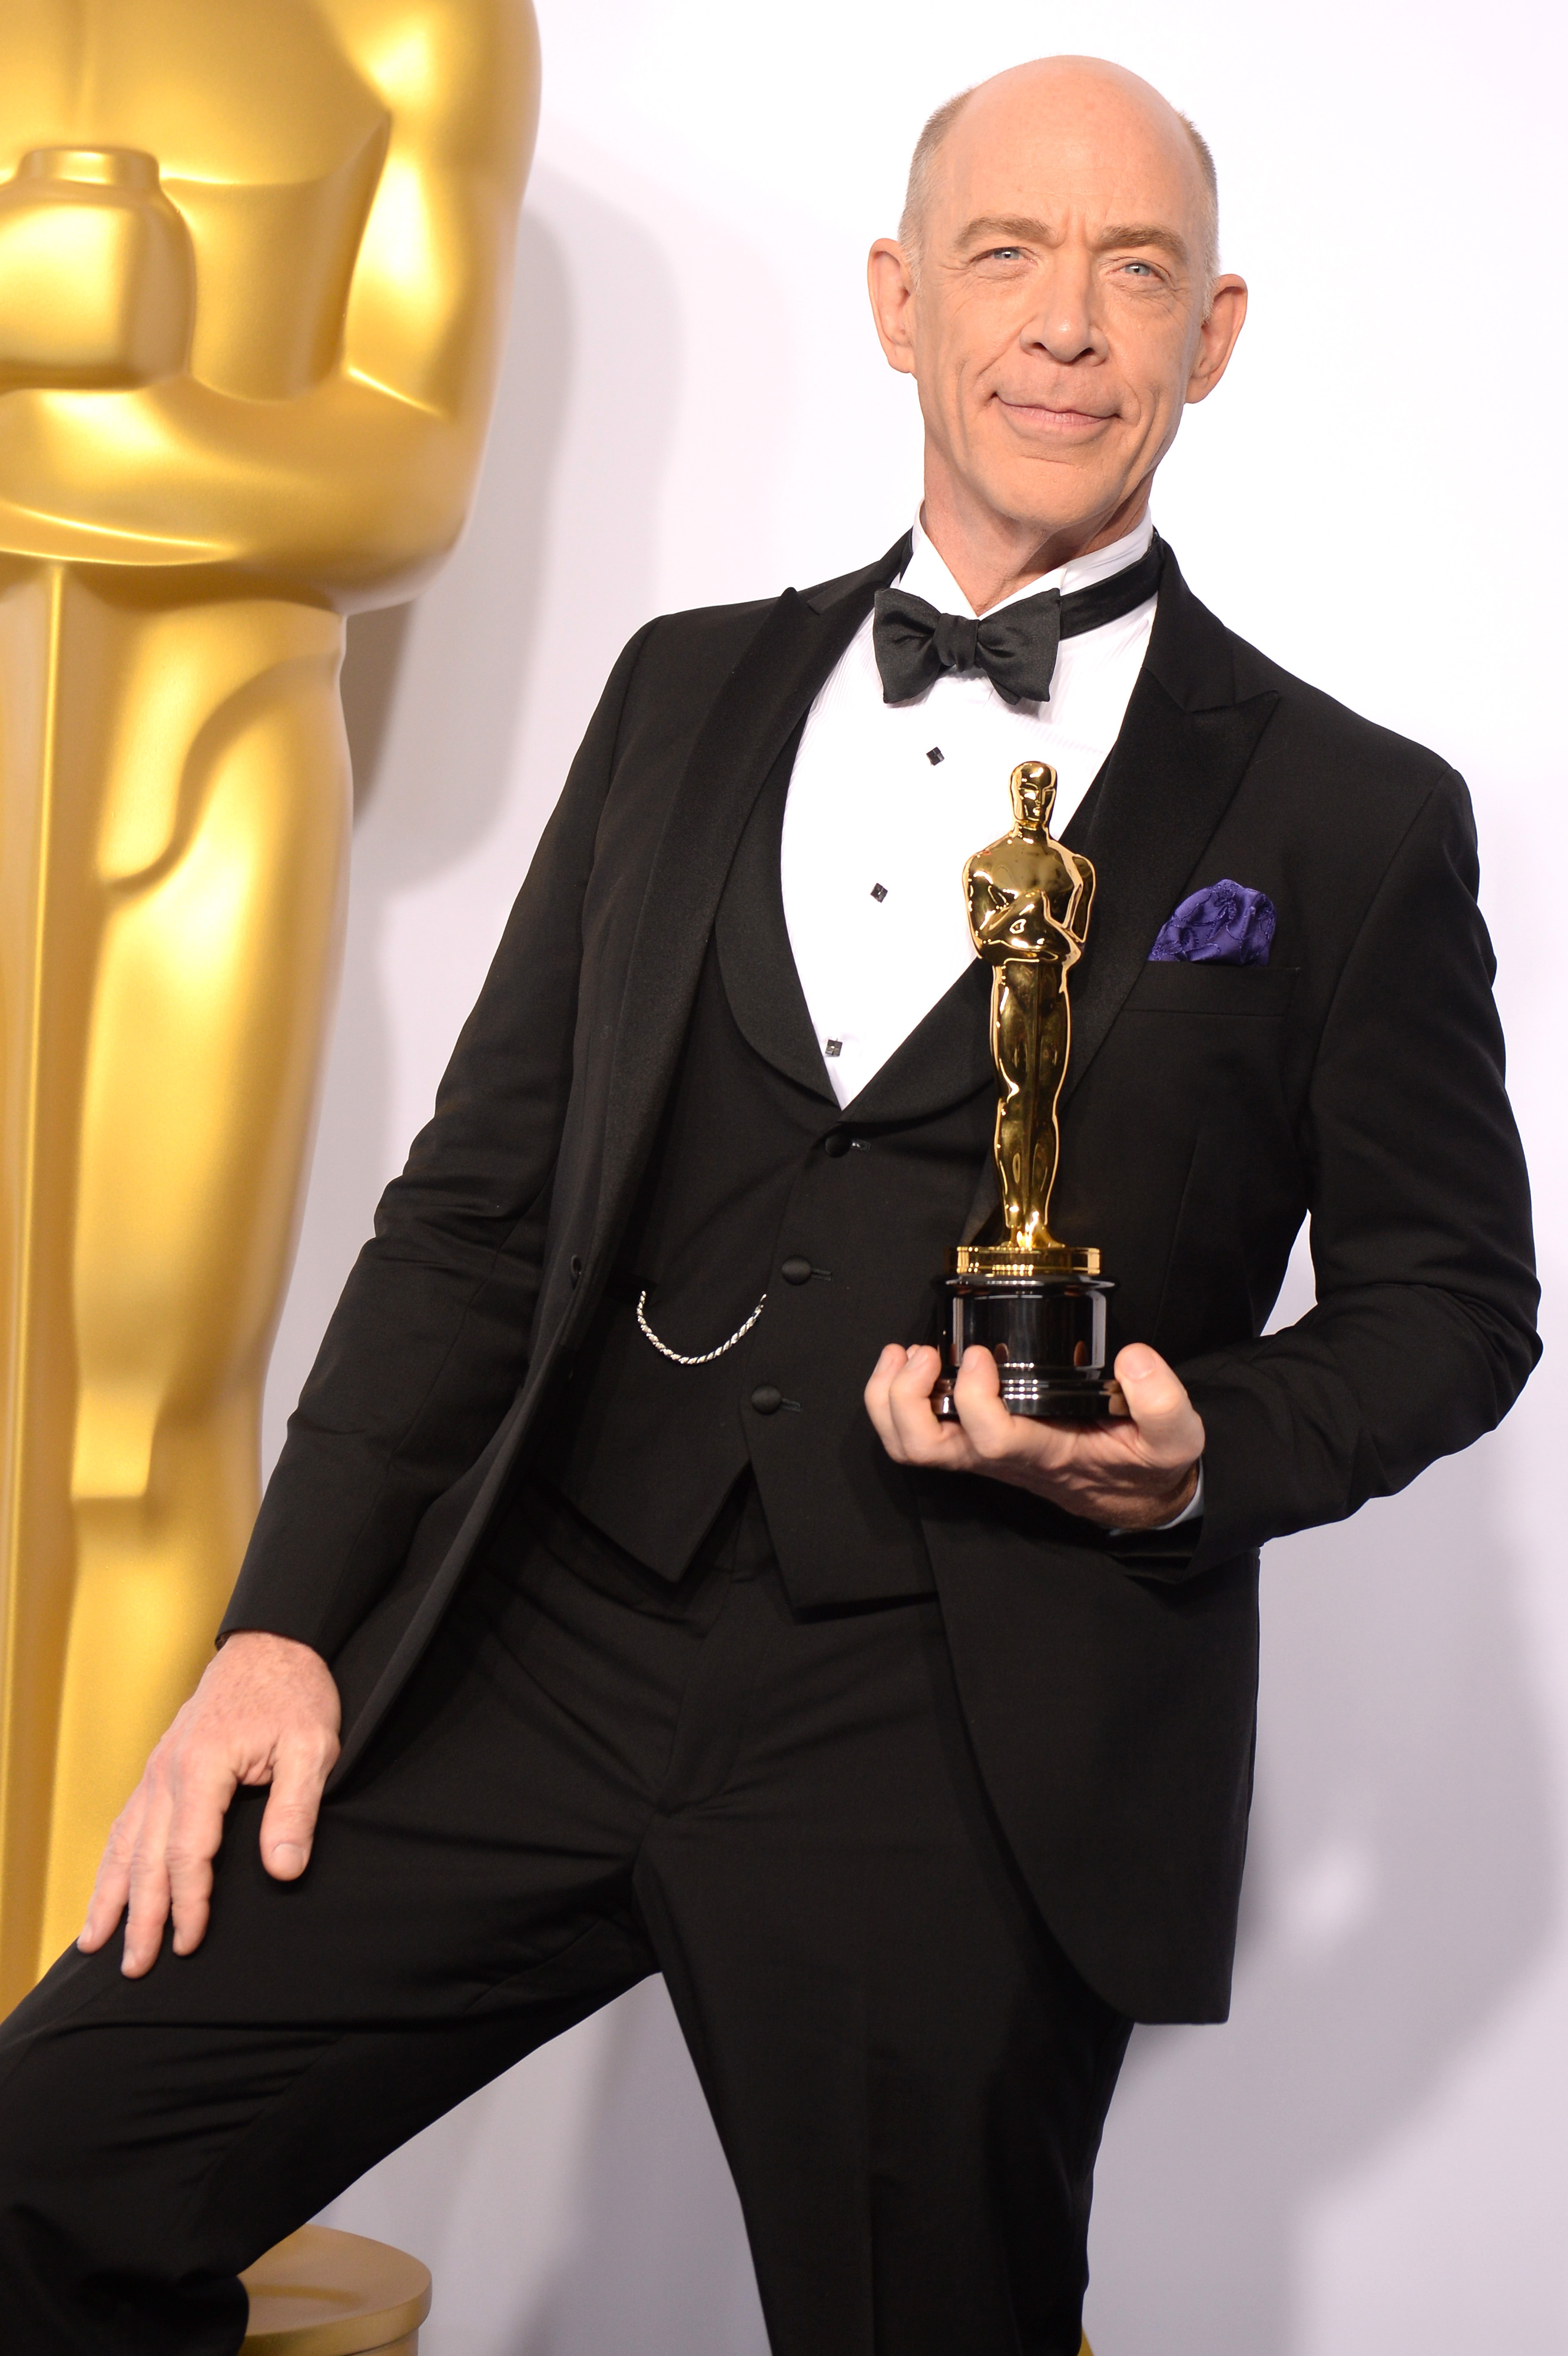 HOLLYWOOD, CA - FEBRUARY 22: Actor J.K. Simmons, with the award for best actor in a supporting role for the film 'Whiplash',